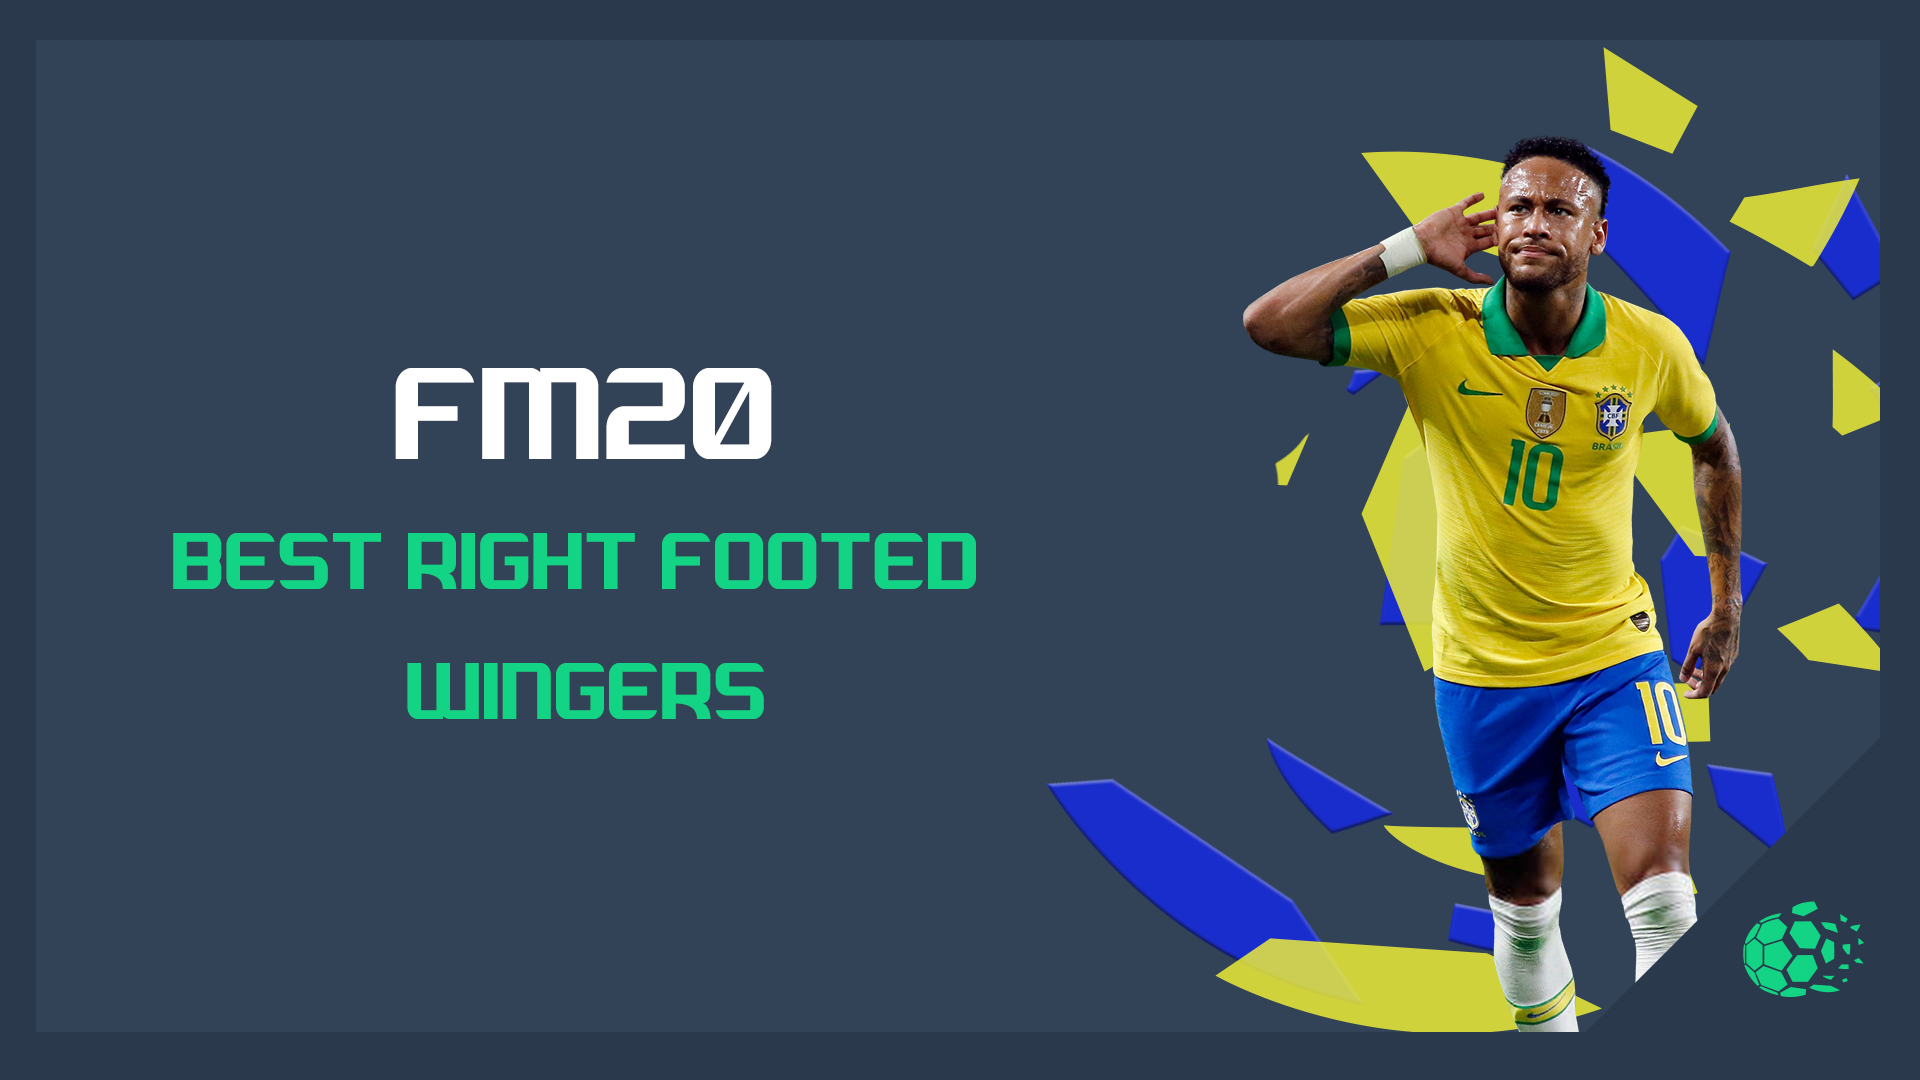 """FM20 FM20: Best Right Footed Wingers"" feature image"